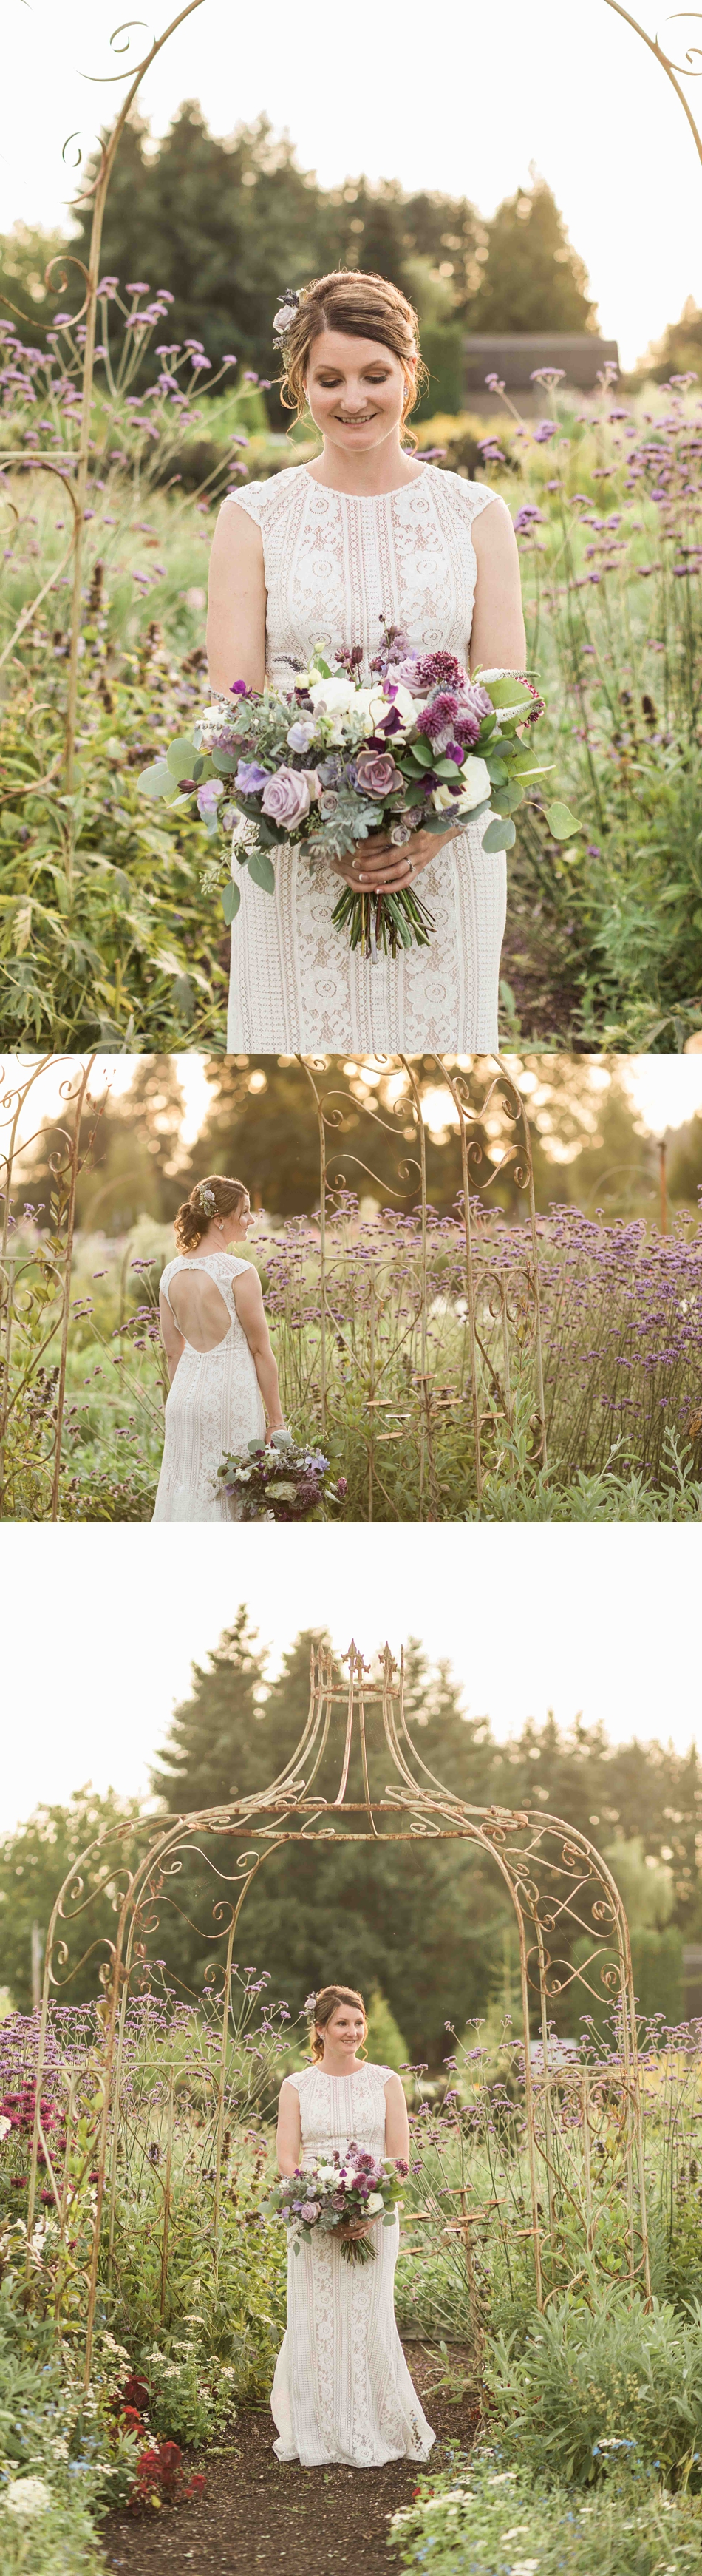 Holding flowers in a field at Pine Creek Nursery in Monroe. Photos by Joanna Monger Photography, Snohomish and Seattle Wedding Photographer.